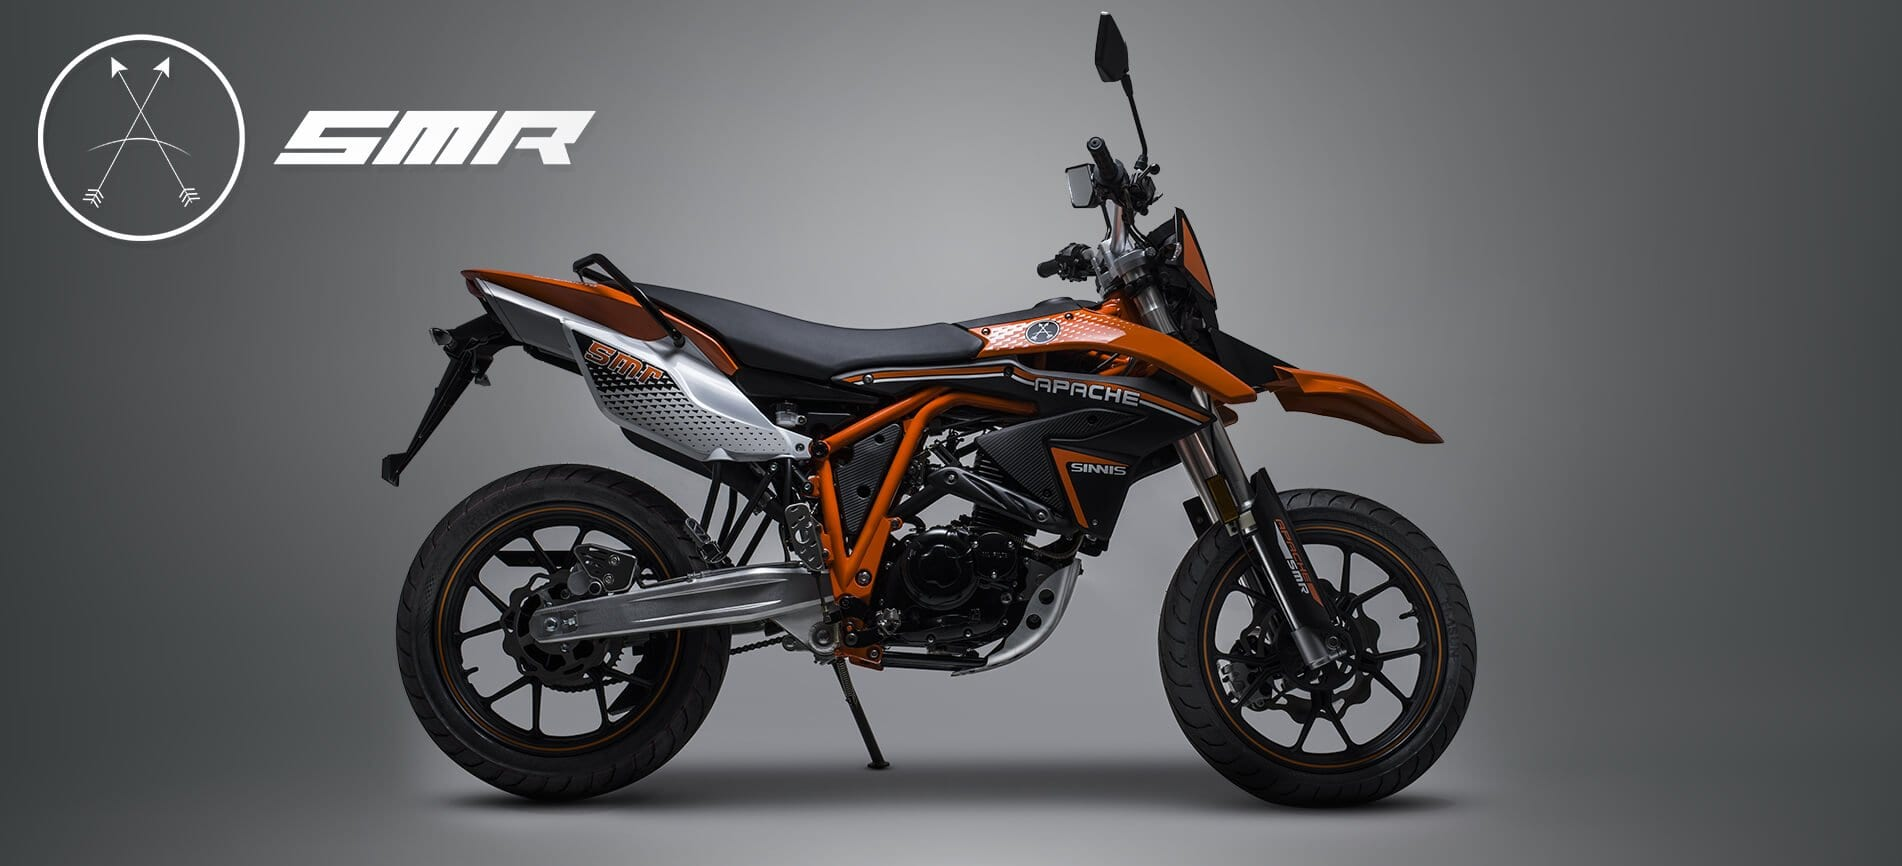 Sinnis Apache SMR 125 studio orange